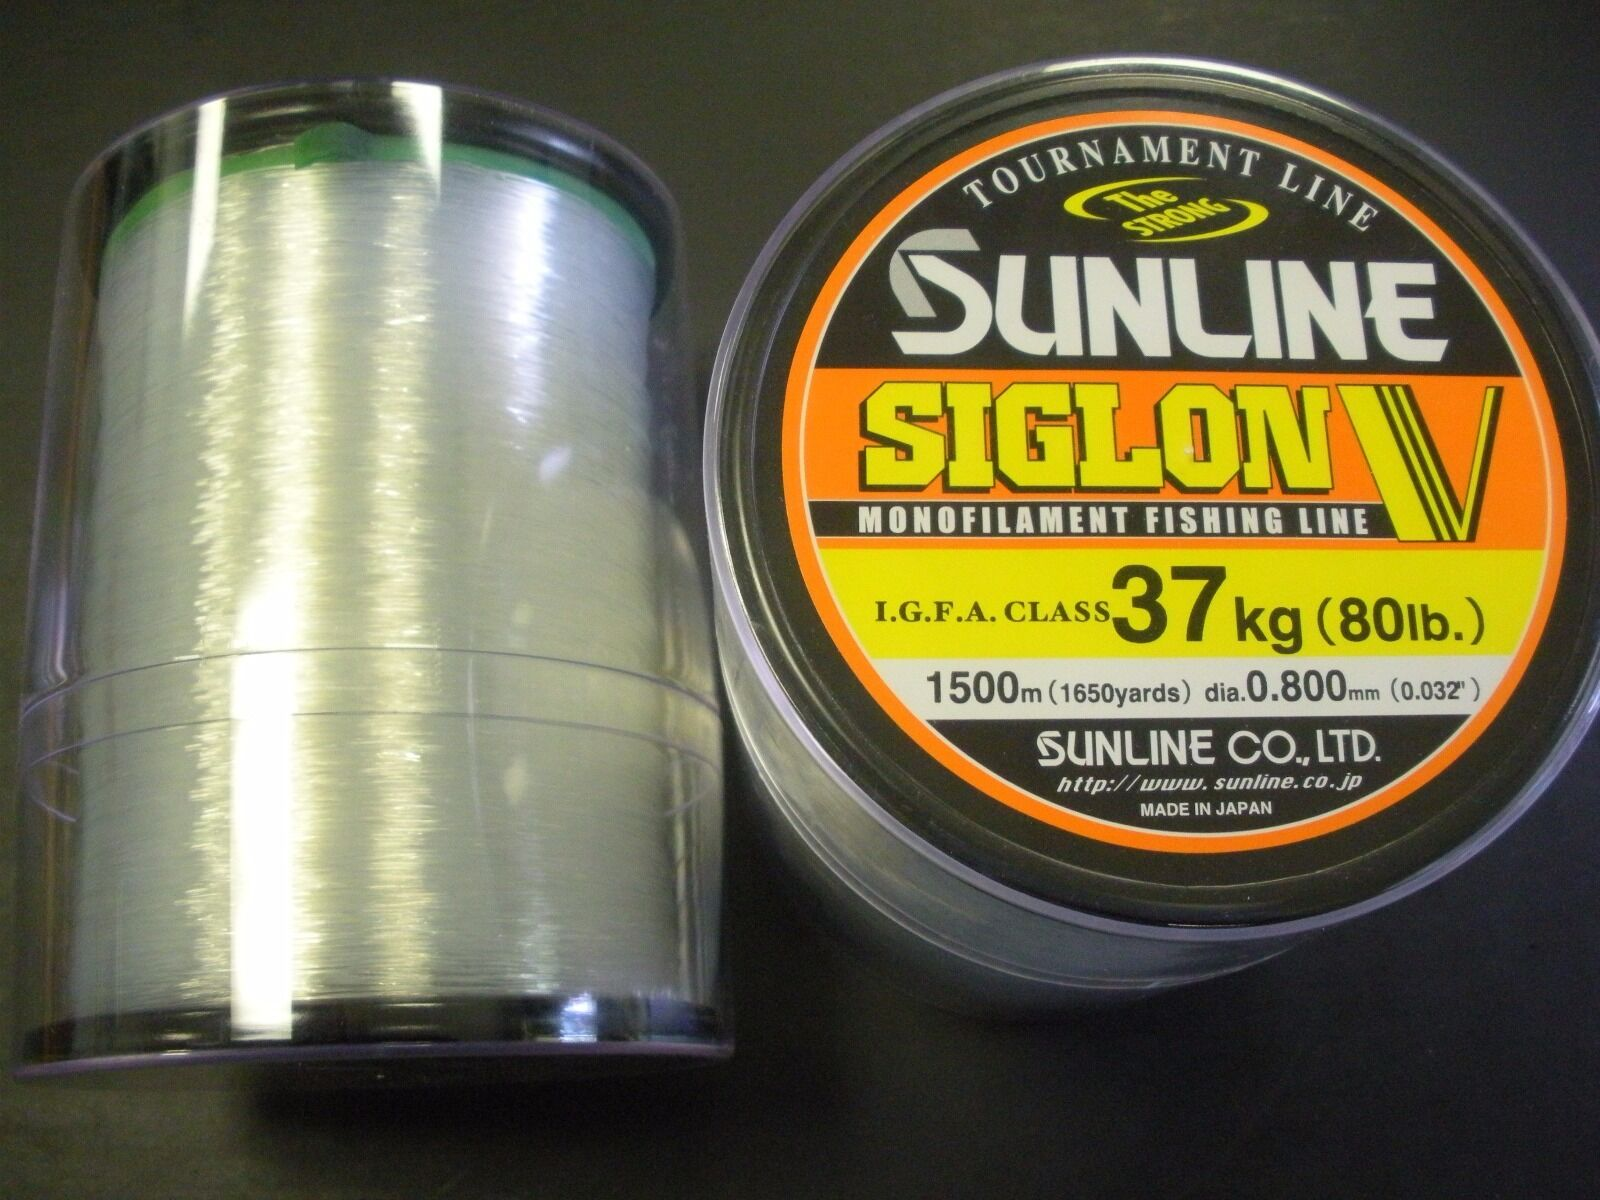 Sunline Siglon V Monofilament IGFA Fishing Line - 80 Lb, 1650 Yd, Clear, New